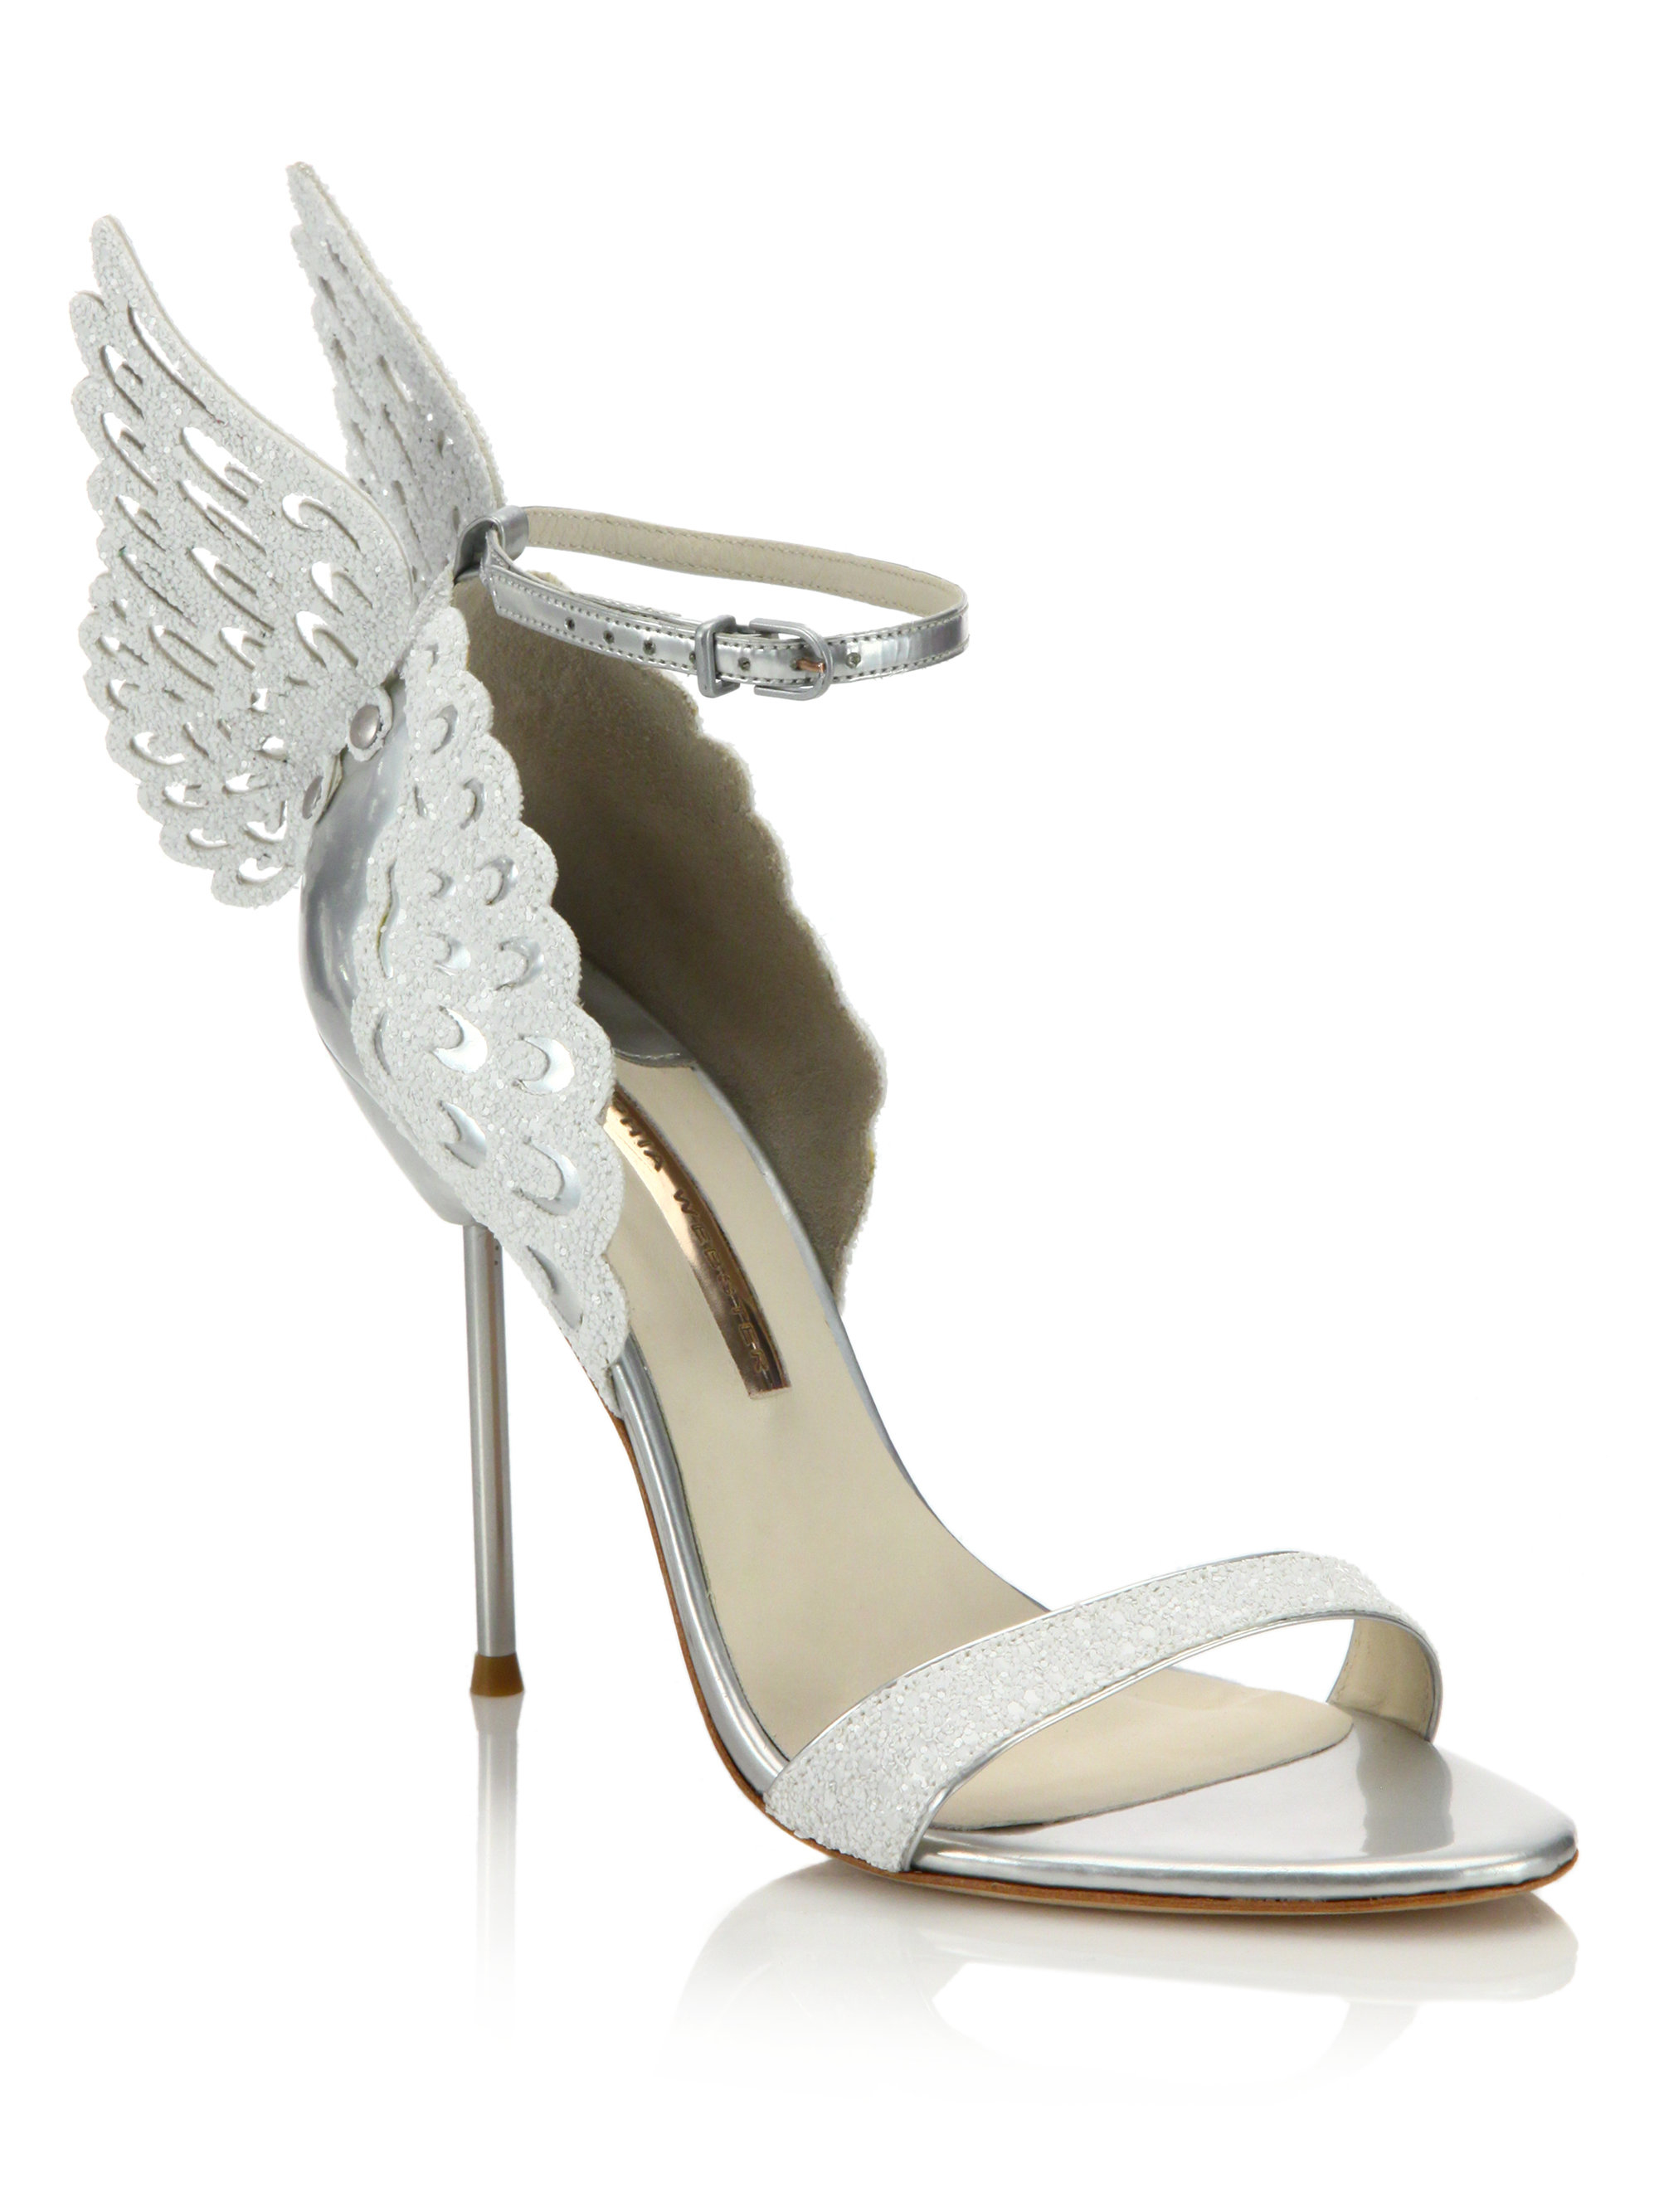 525b8551e52 Gallery. Previously sold at  Saks Fifth Avenue · Women s Sophia Webster  Evangeline